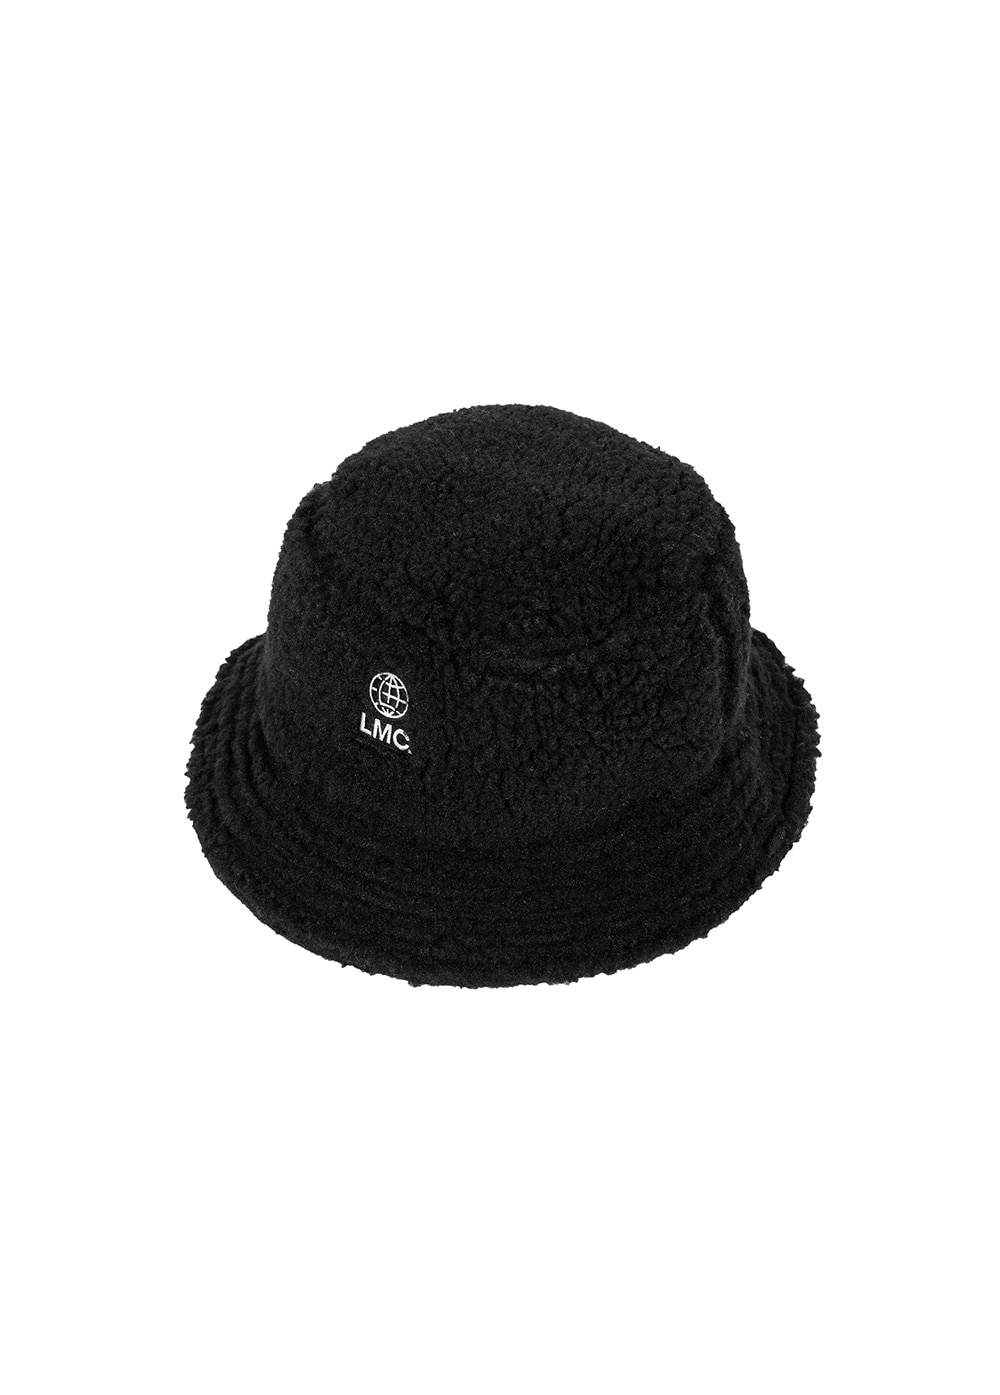 LMC BOA FLEECE BUCKET HAT black